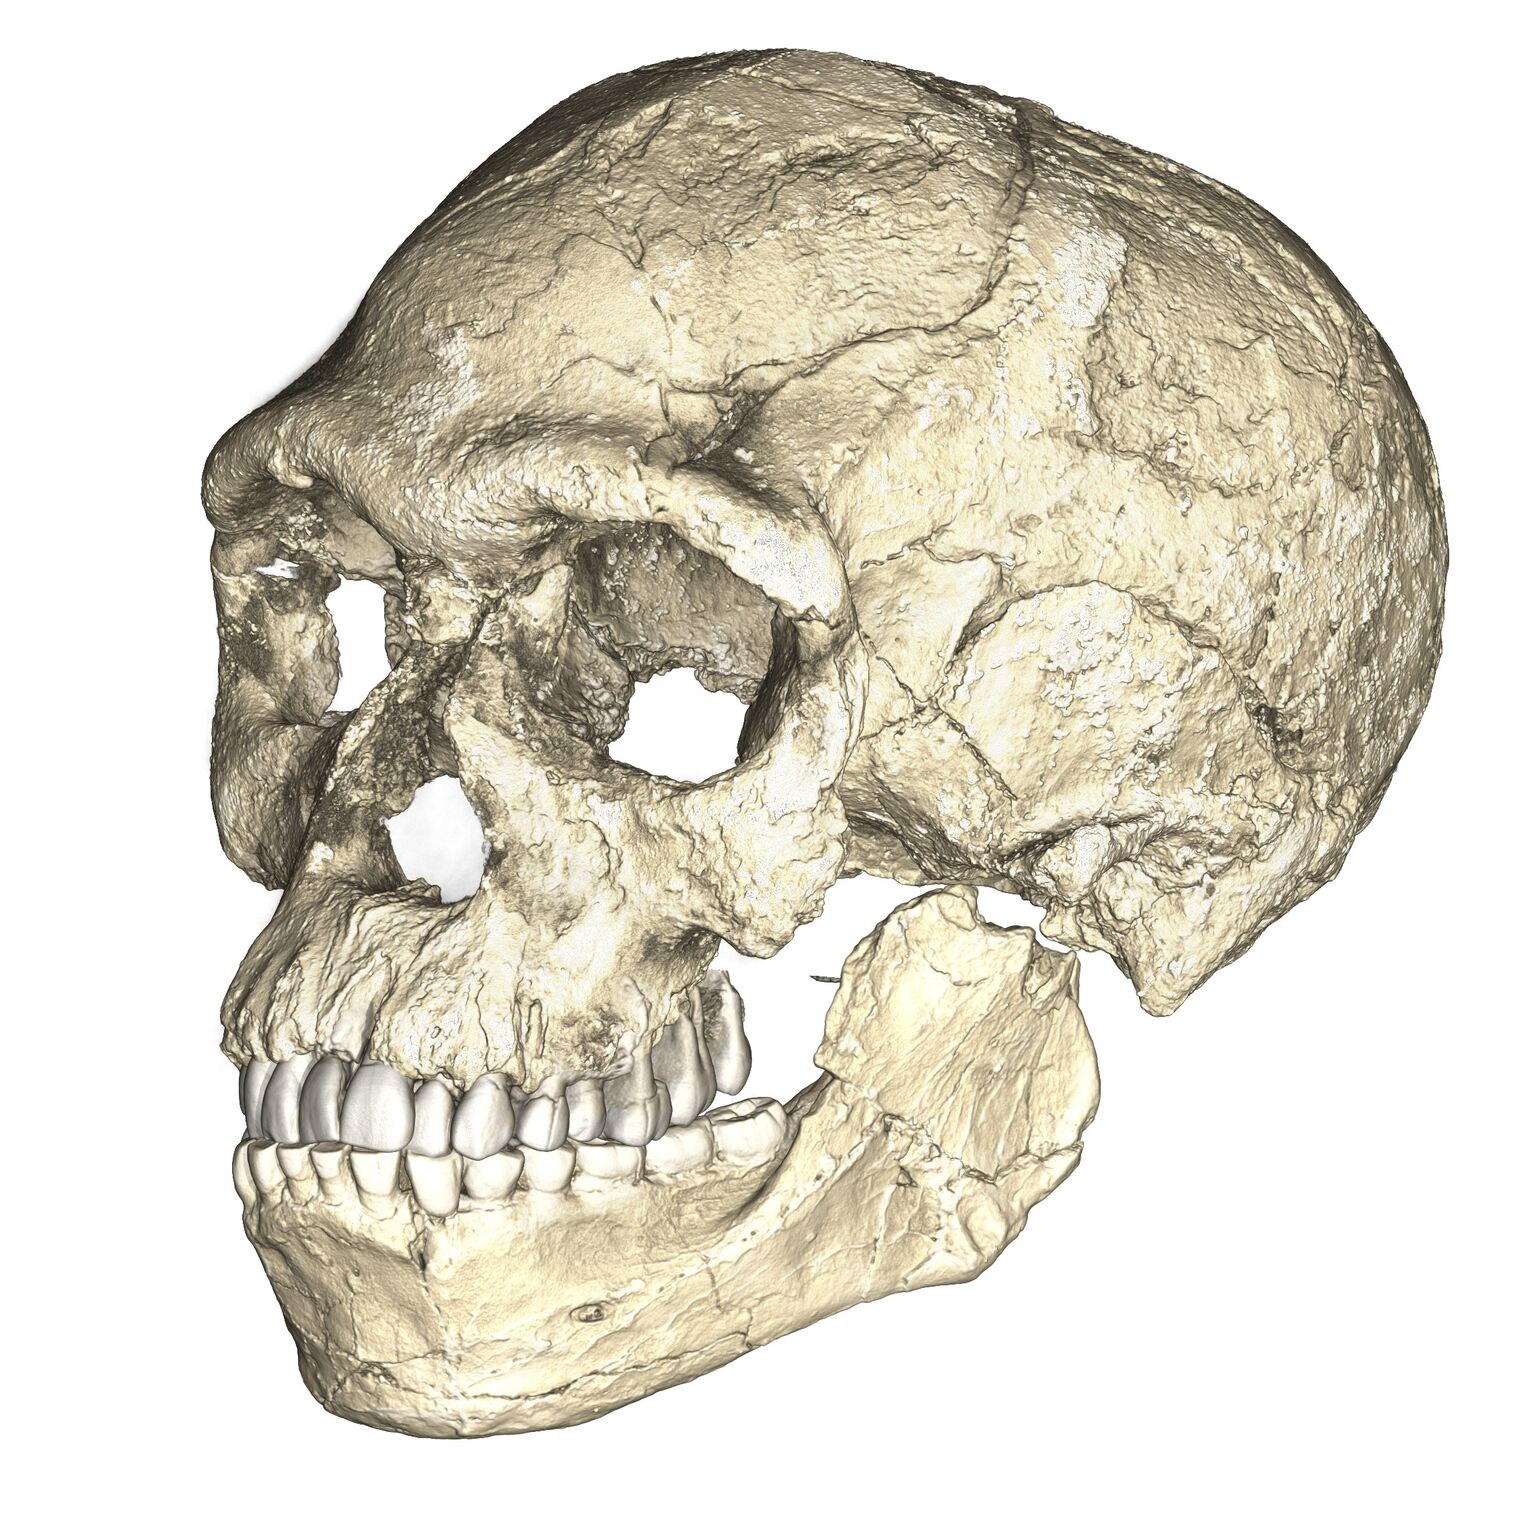 Earliest fossils of Homo sapiens found in Morocco